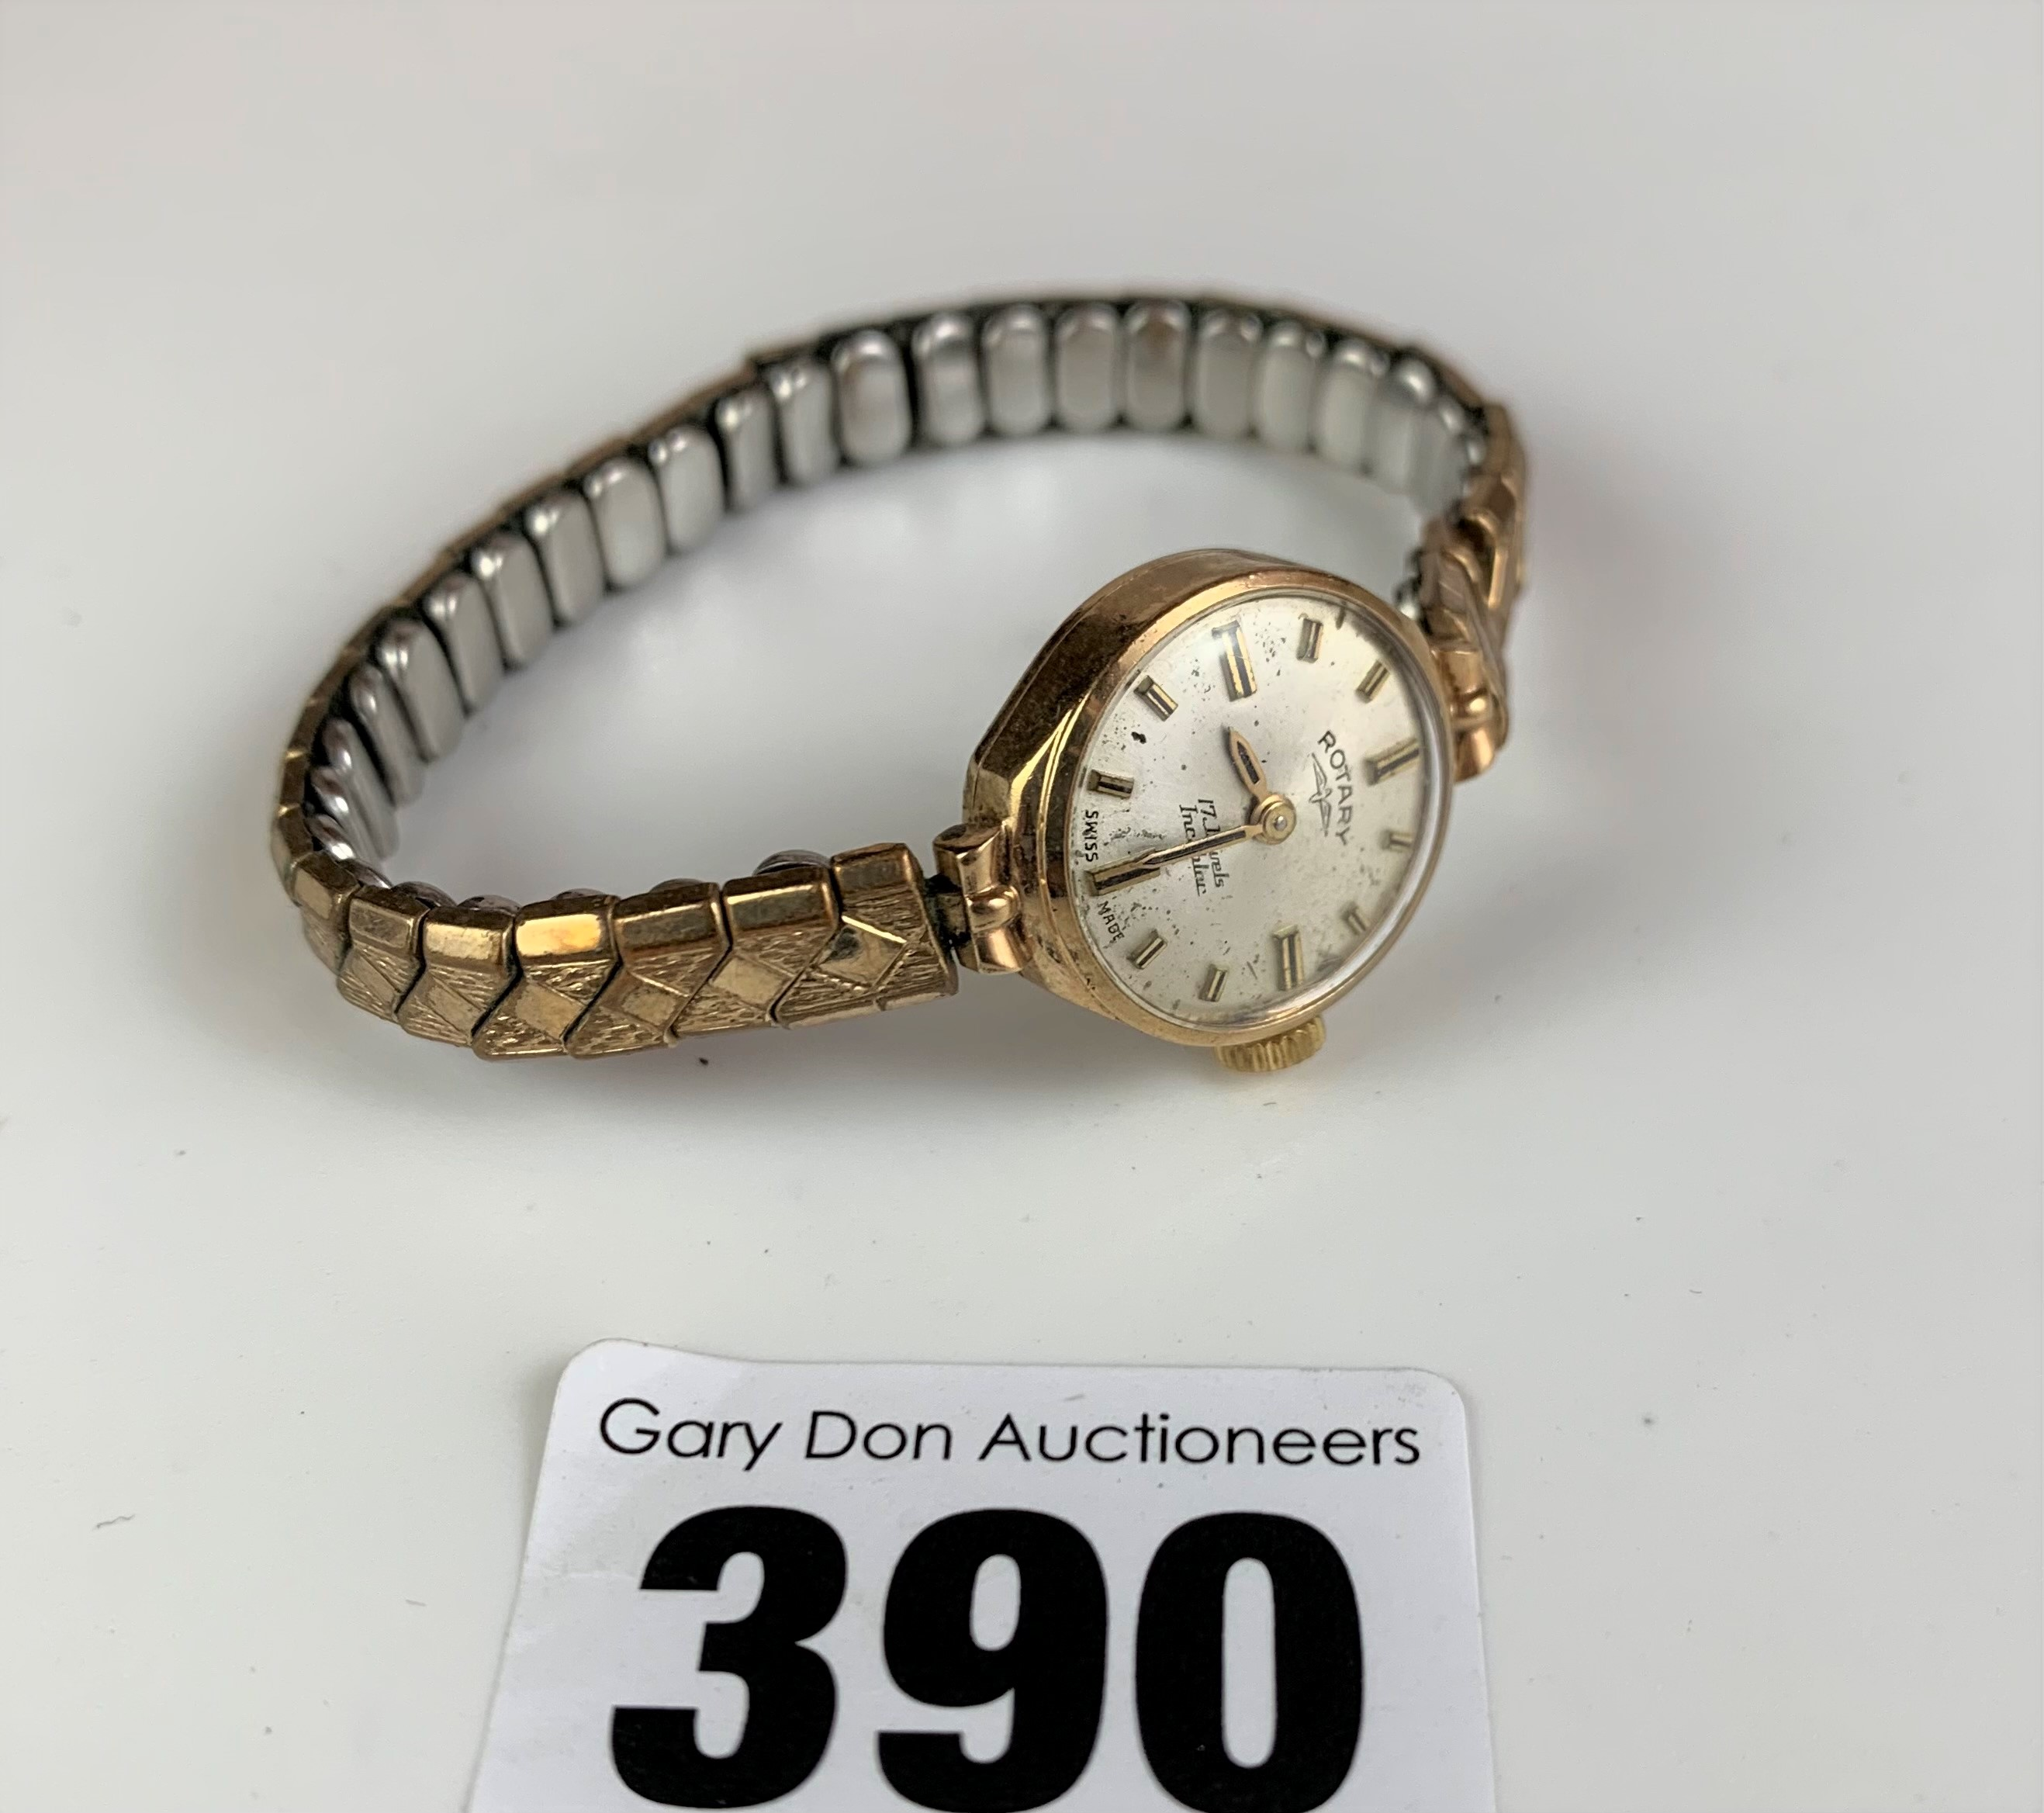 9k gold ladies Rotary watch with elasticated plated strap, total w: 15.3 gms, not working (pv £35)